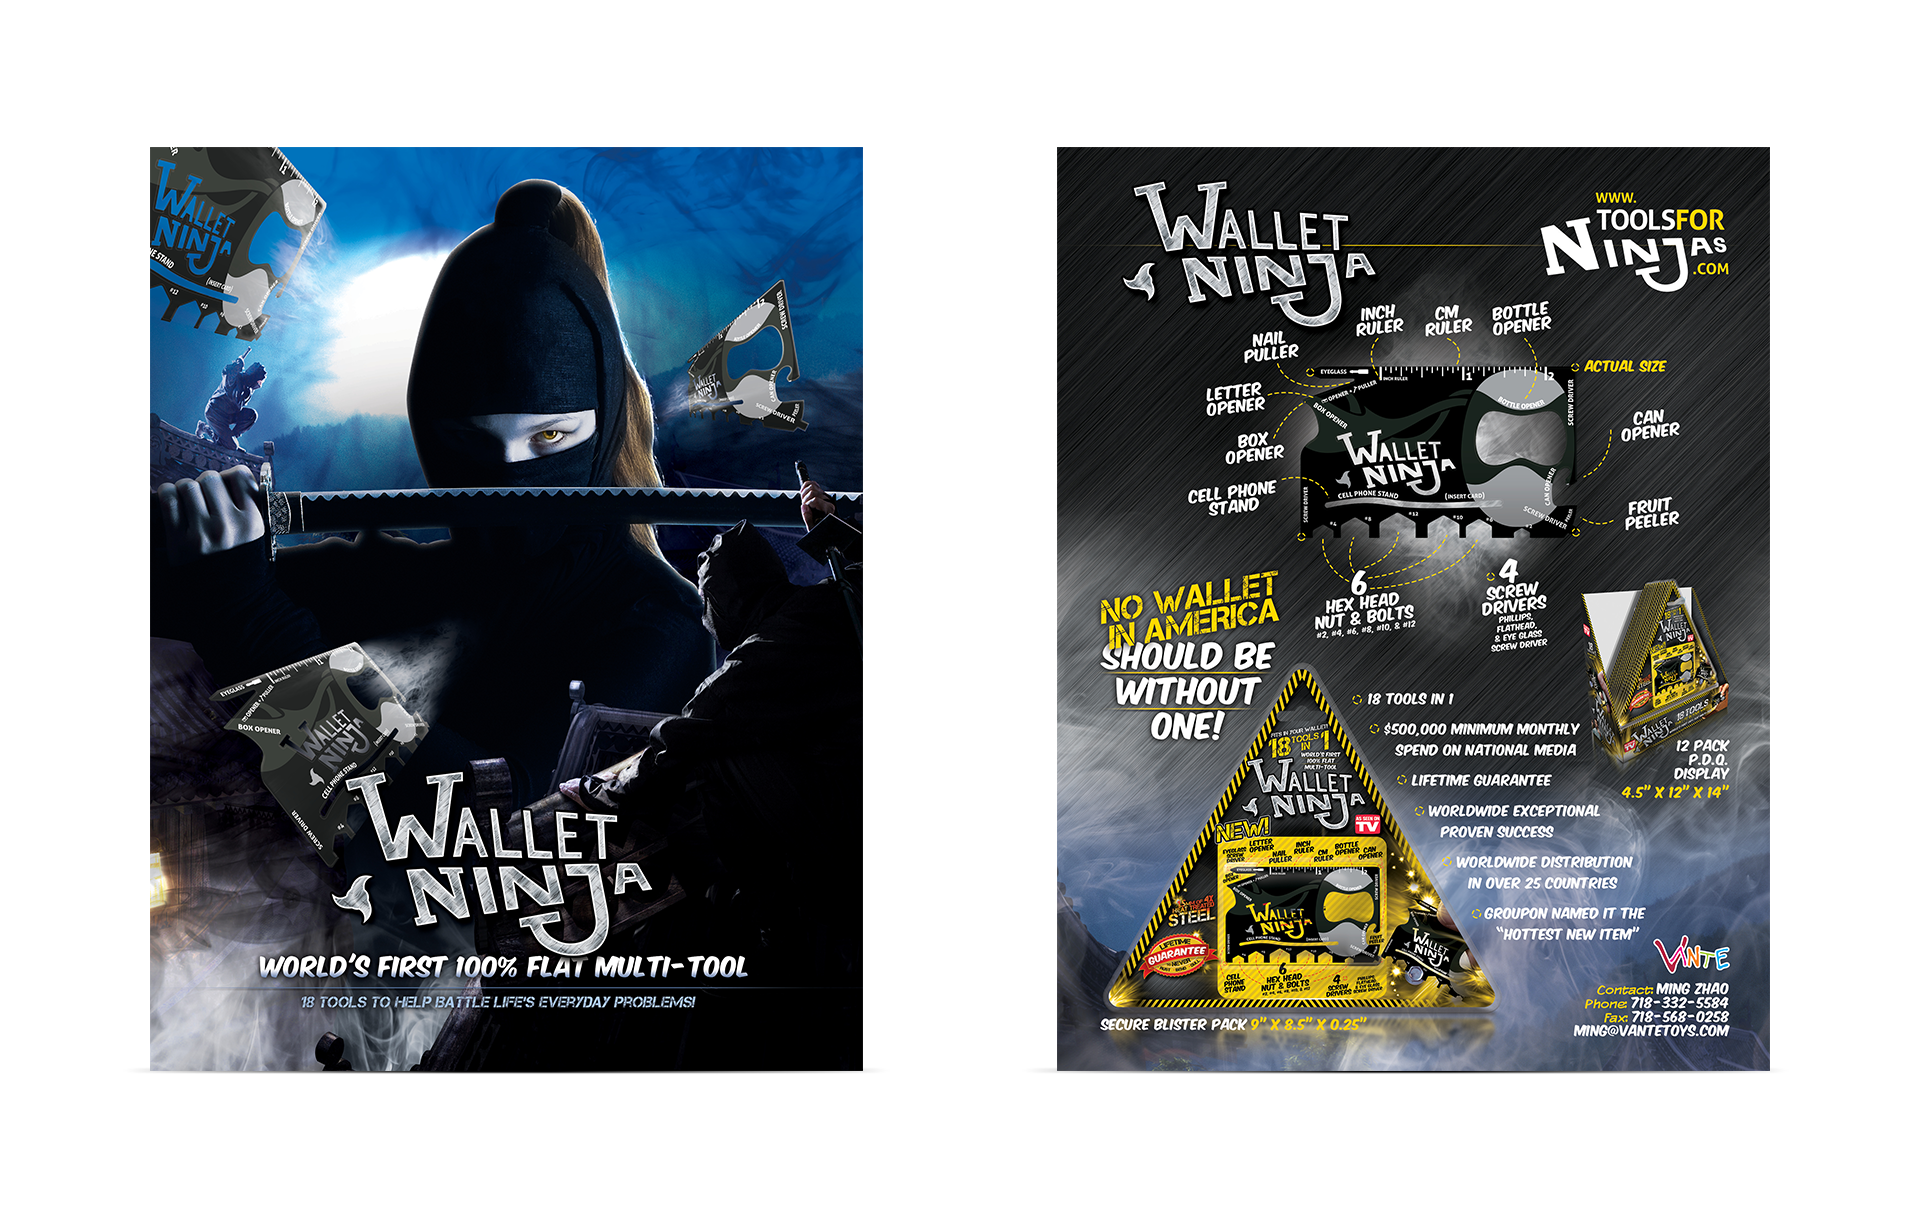 Wallet Ninja Print Sell Sheet Design by Scott Luscombe of Creatibly